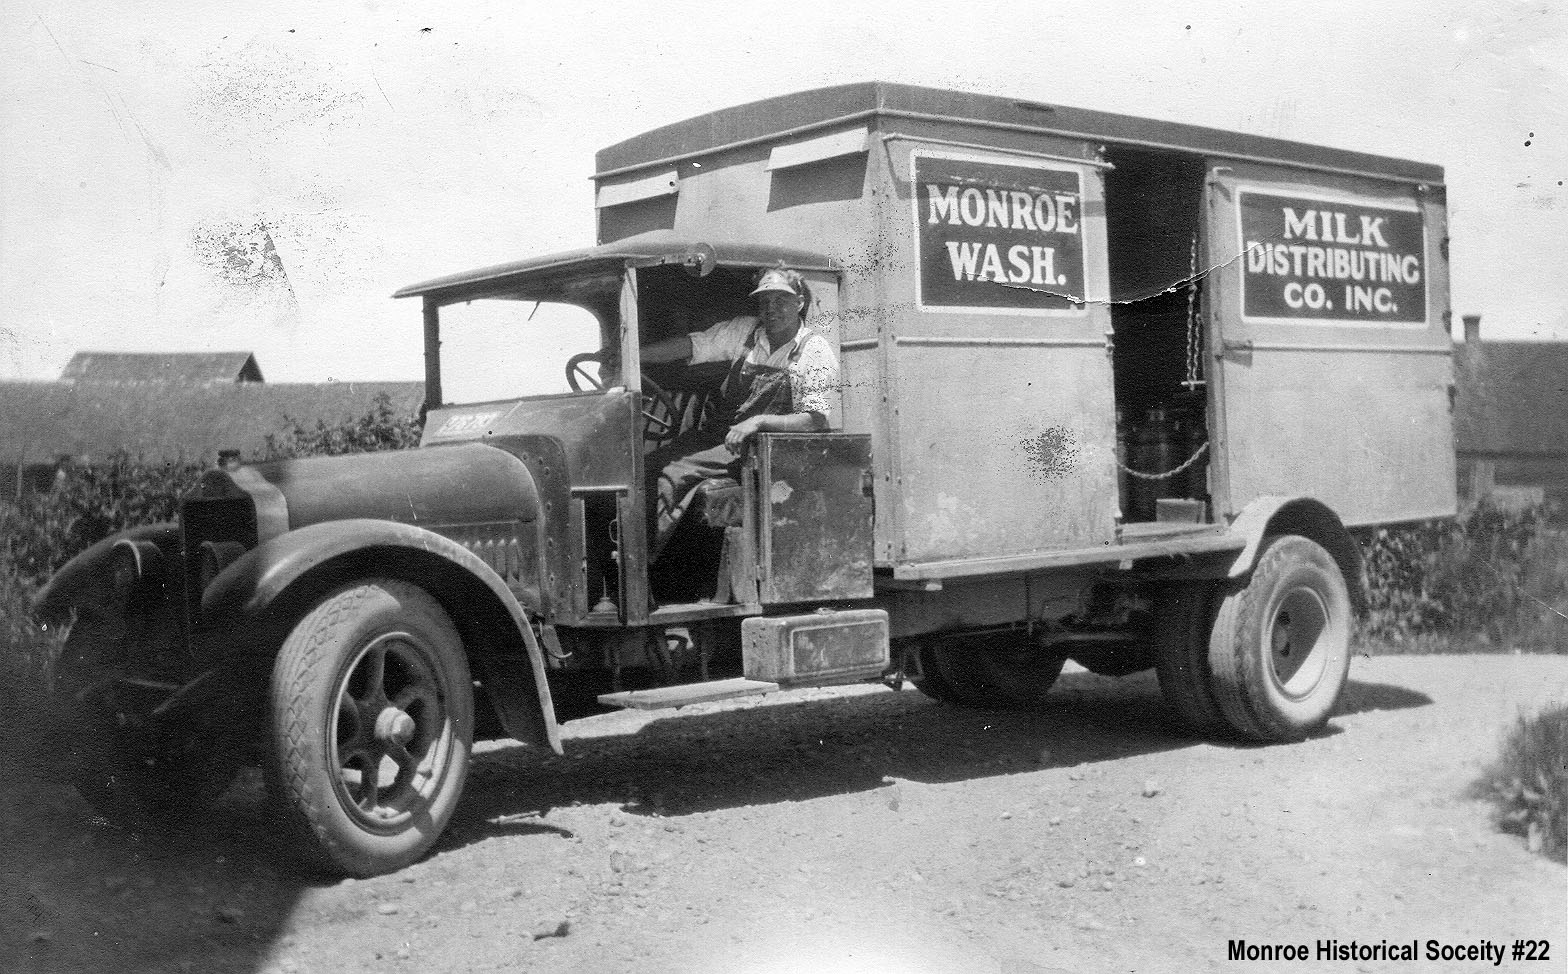 0022 – Monroe Milk Distributing Co. truck